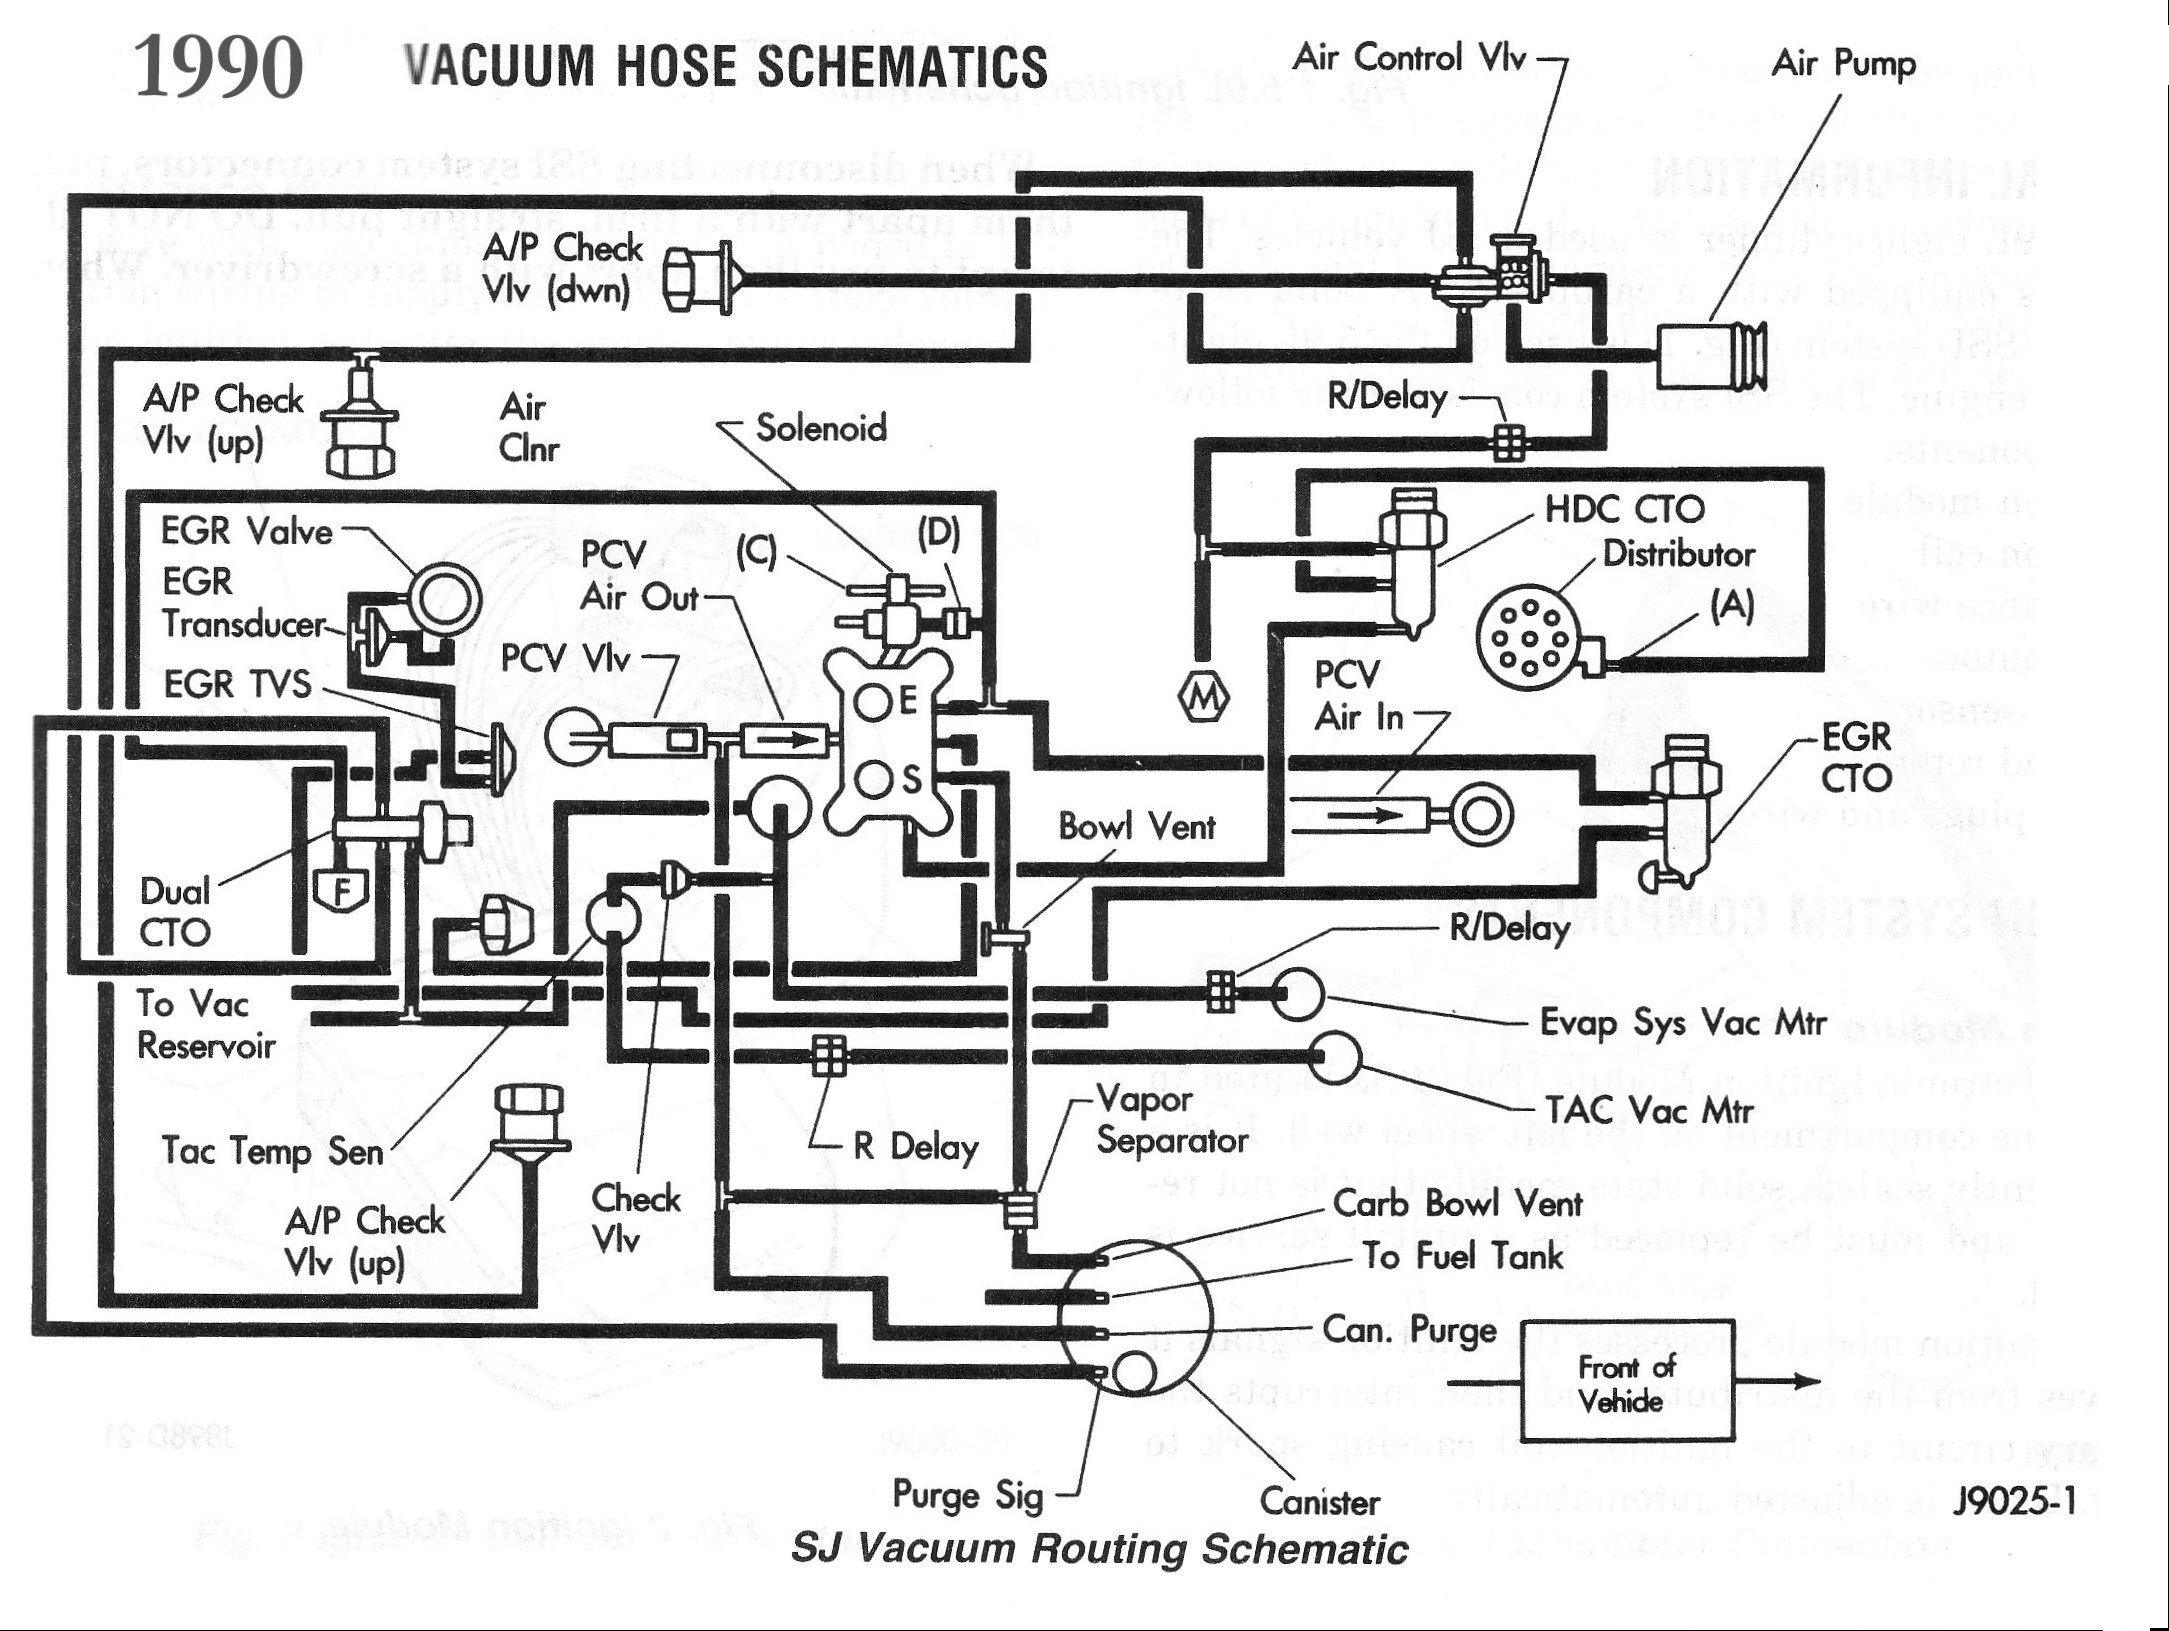 1990 jeep vacuum diagram wiring diagram site vacuum diagram for 1990 jeep wrangler 25 l wiring diagram online 1993 jeep wrangler 4x4 vacuum diagram 1990 jeep vacuum diagram